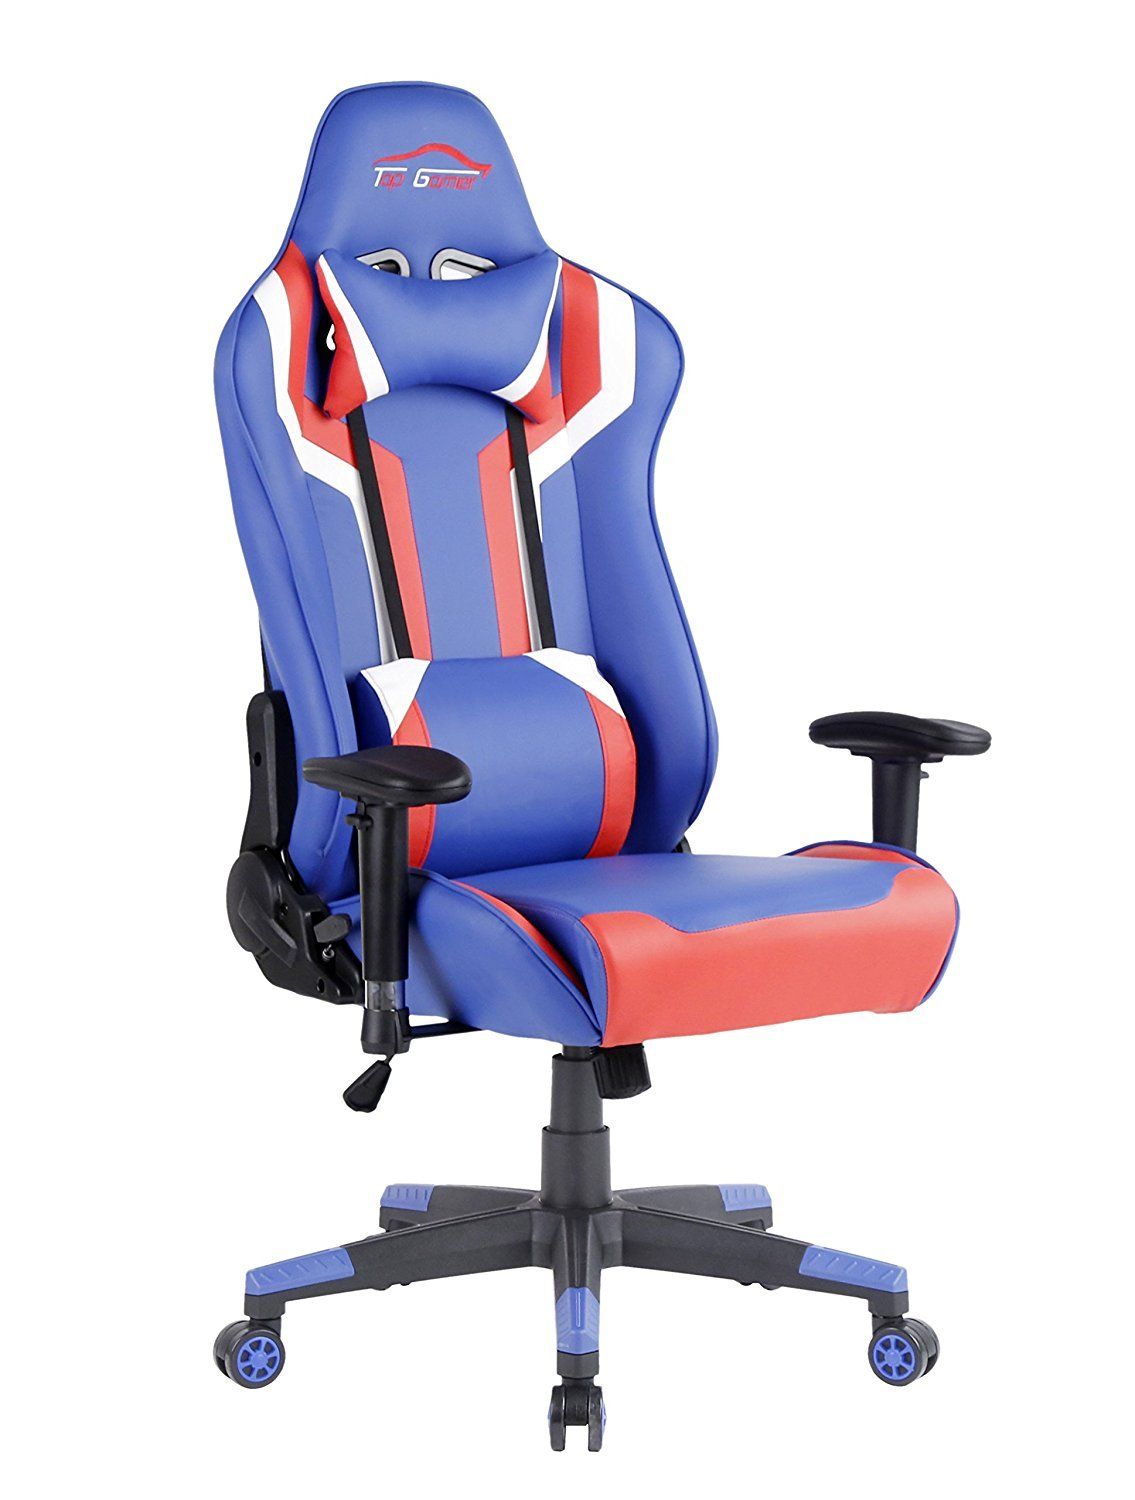 Top Gamer Gaming Chair PC Computer Game Chairs for Video Game (Blue/Red/White,2)